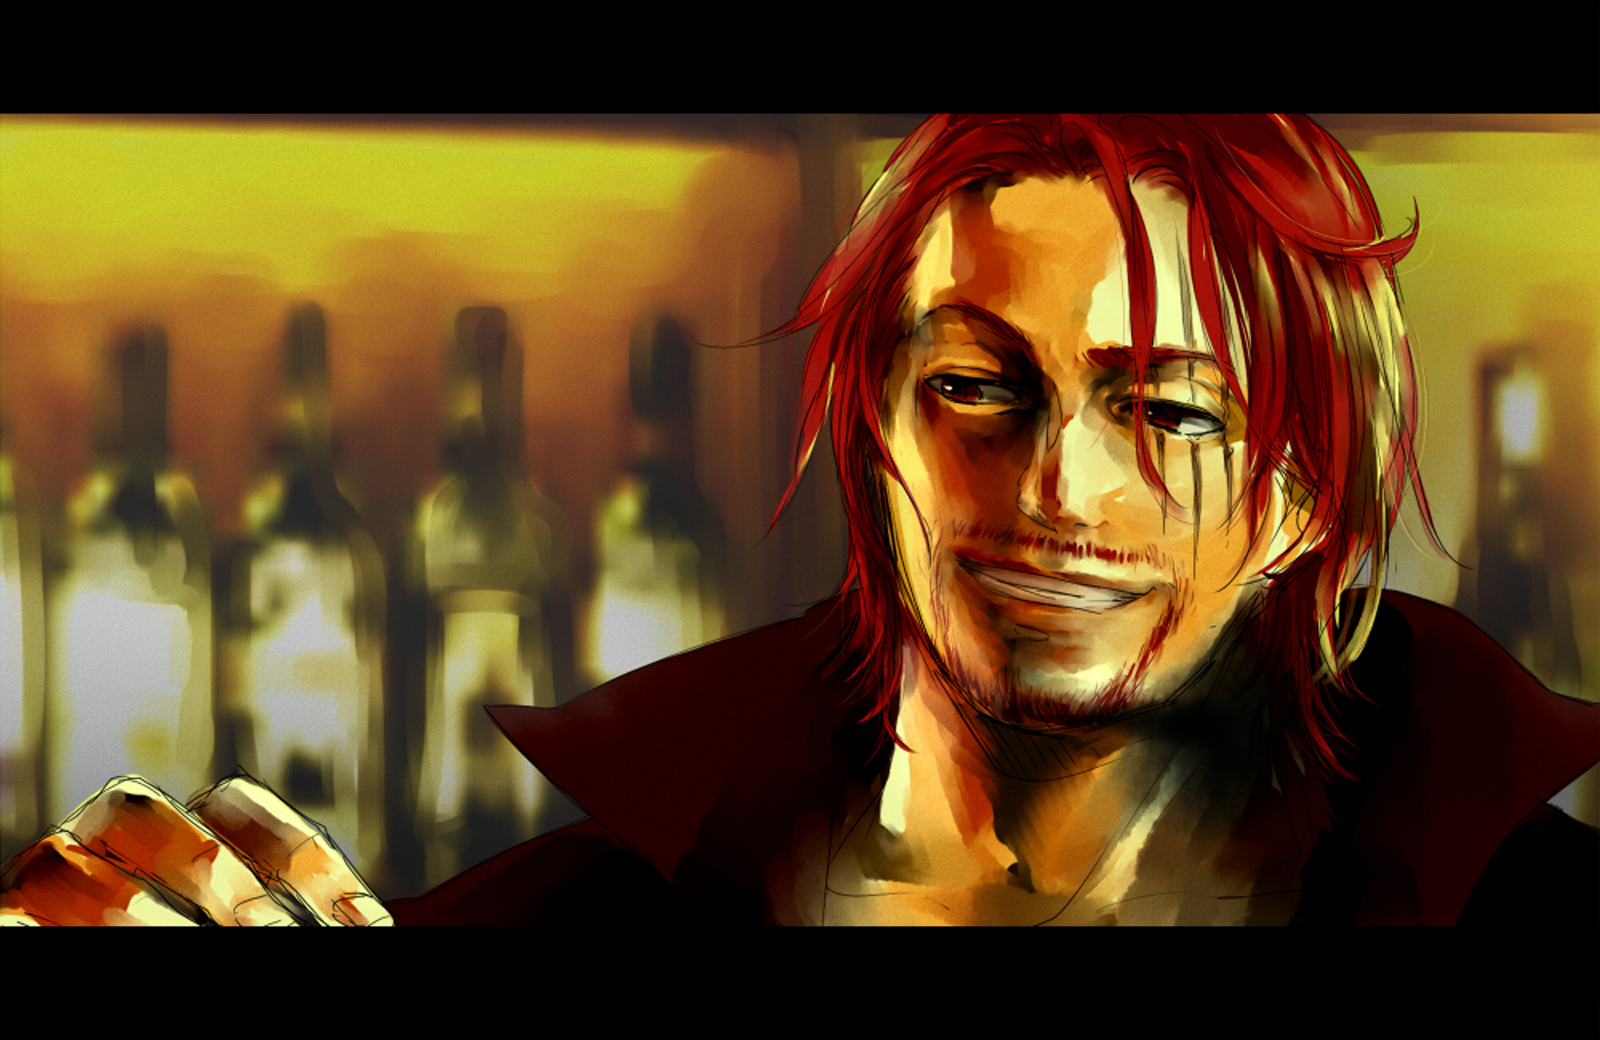 Red Haired Shanks One Piece Anime HD Wallpaper Desktop Background 1600x1040